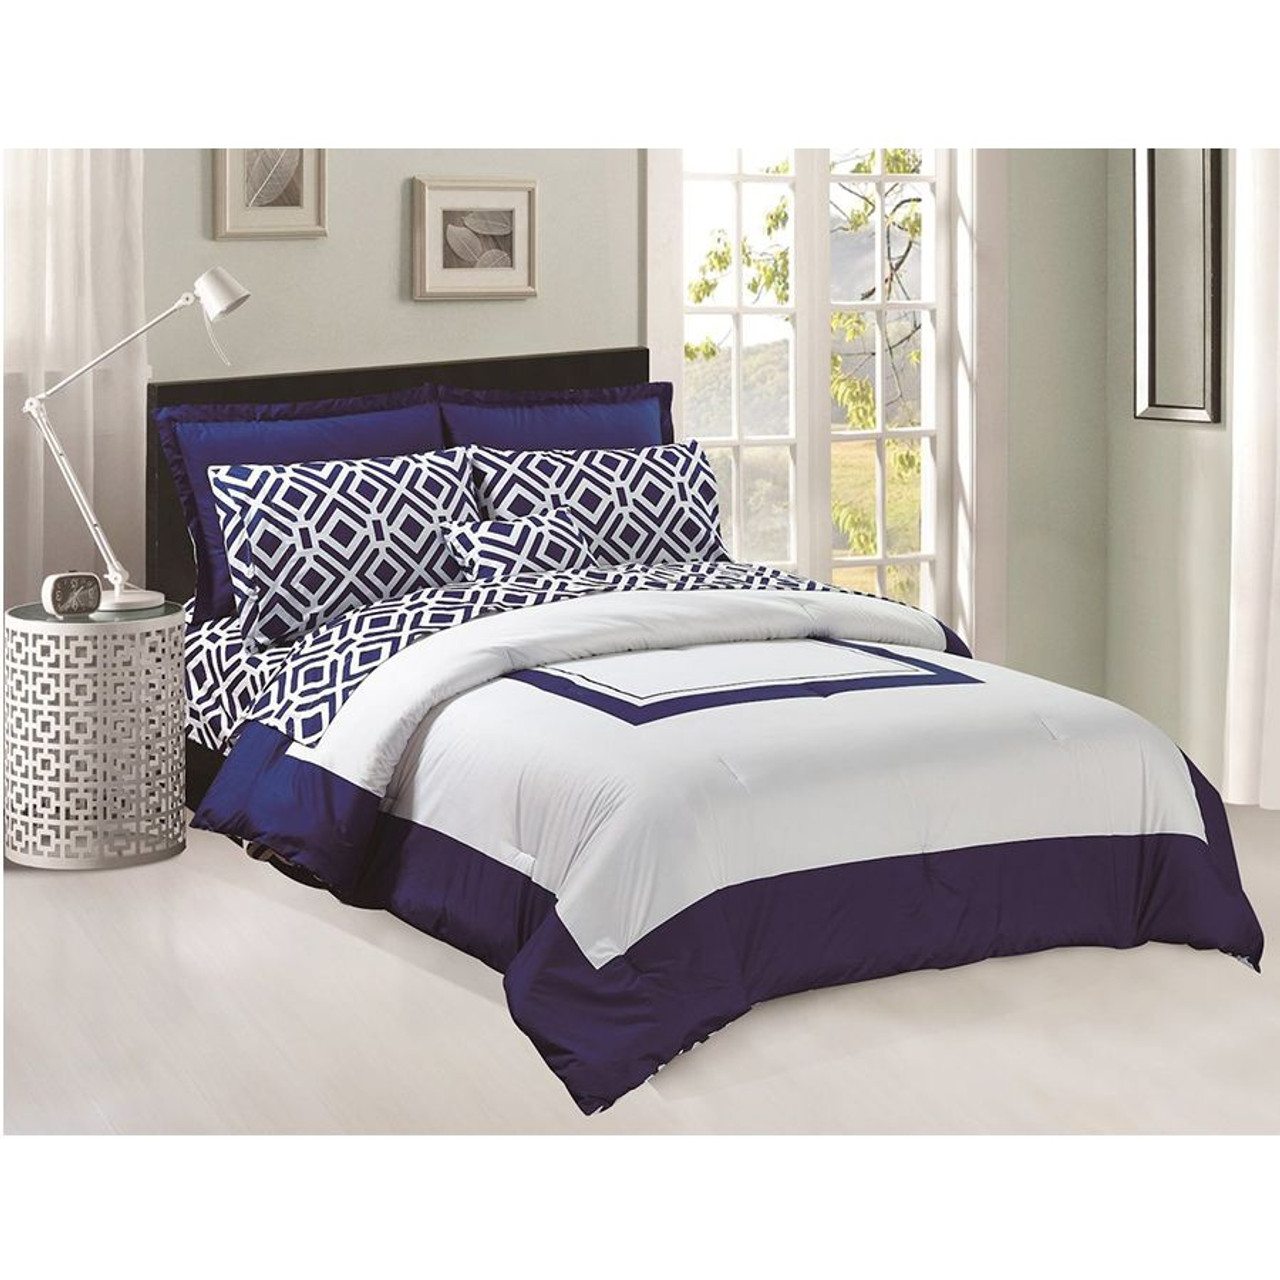 comforter flat fitted sheets set 8 pcs soft microfiber navy blue and white king size by legacy decor